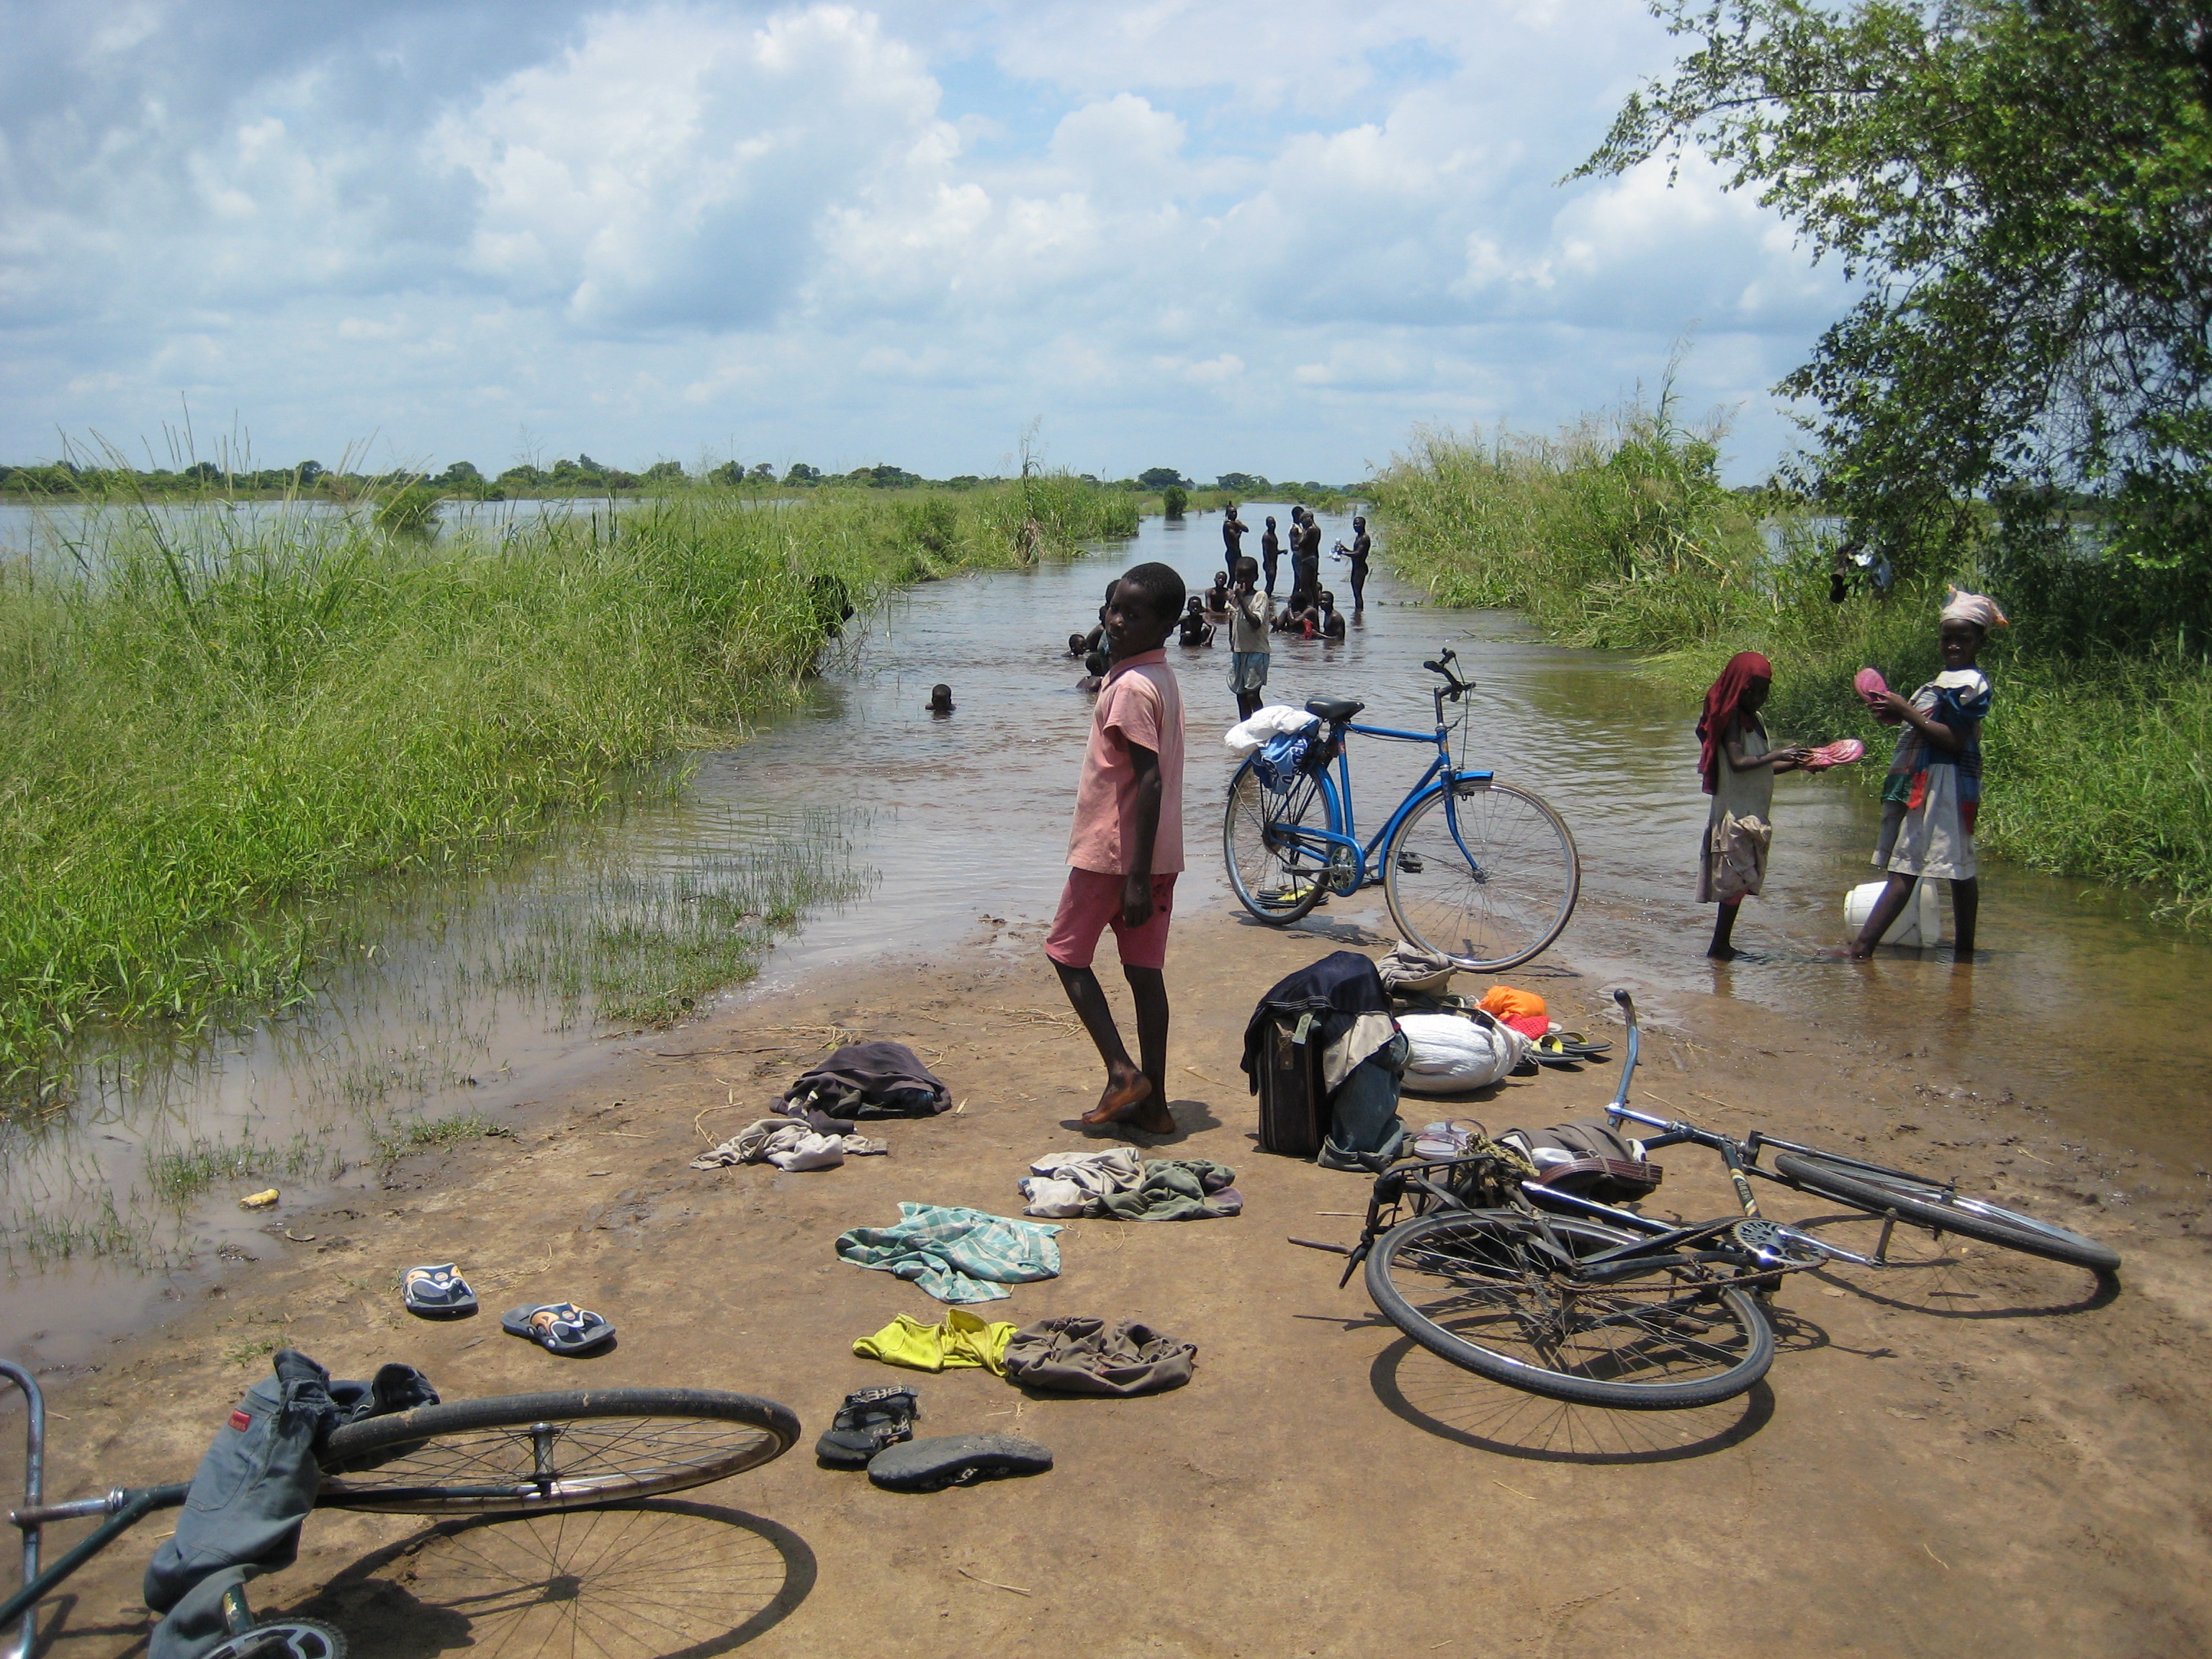 Children bathe at the edge of a flooded road in the town of Mopeia, Zambezia province.